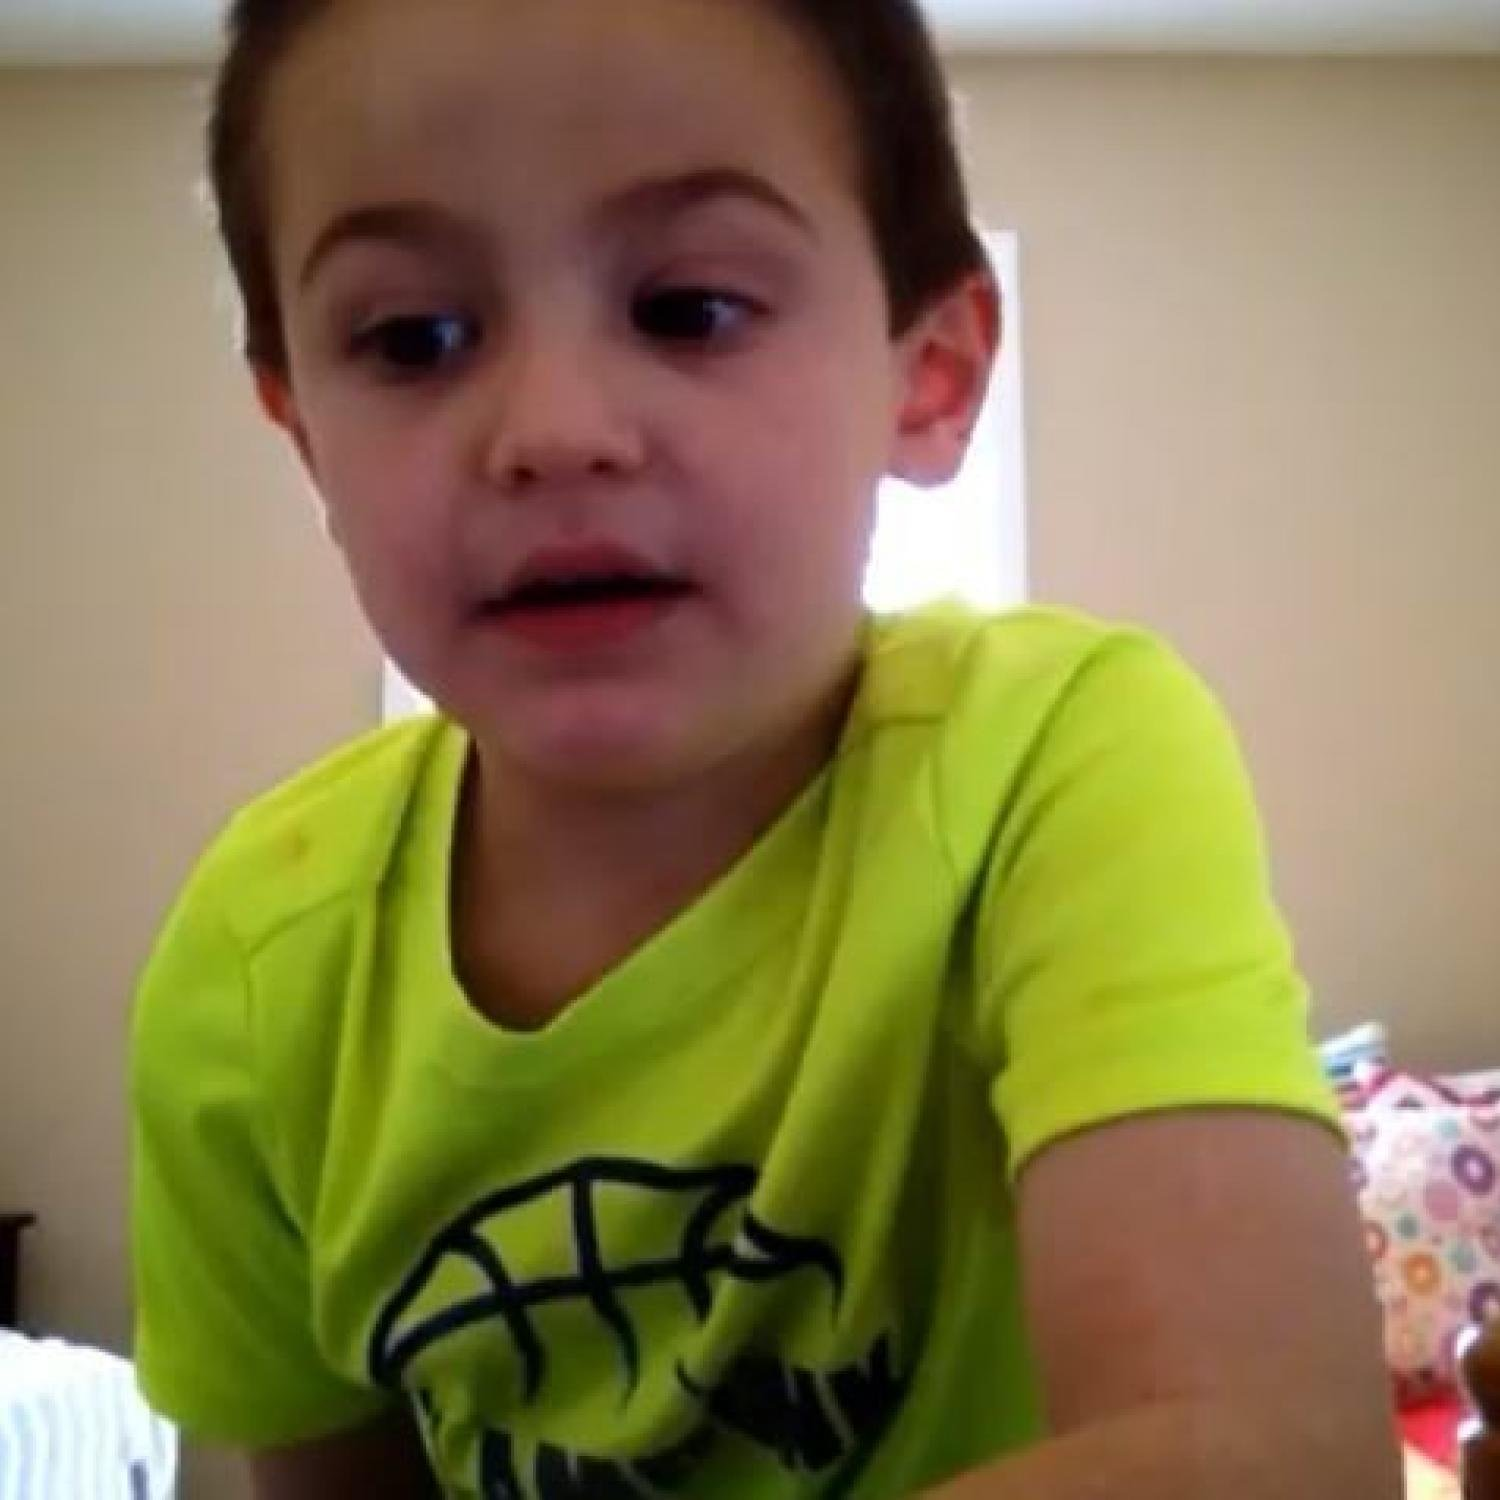 6-year-old Teaches Kids How To Cope With Diabetes On Youtube